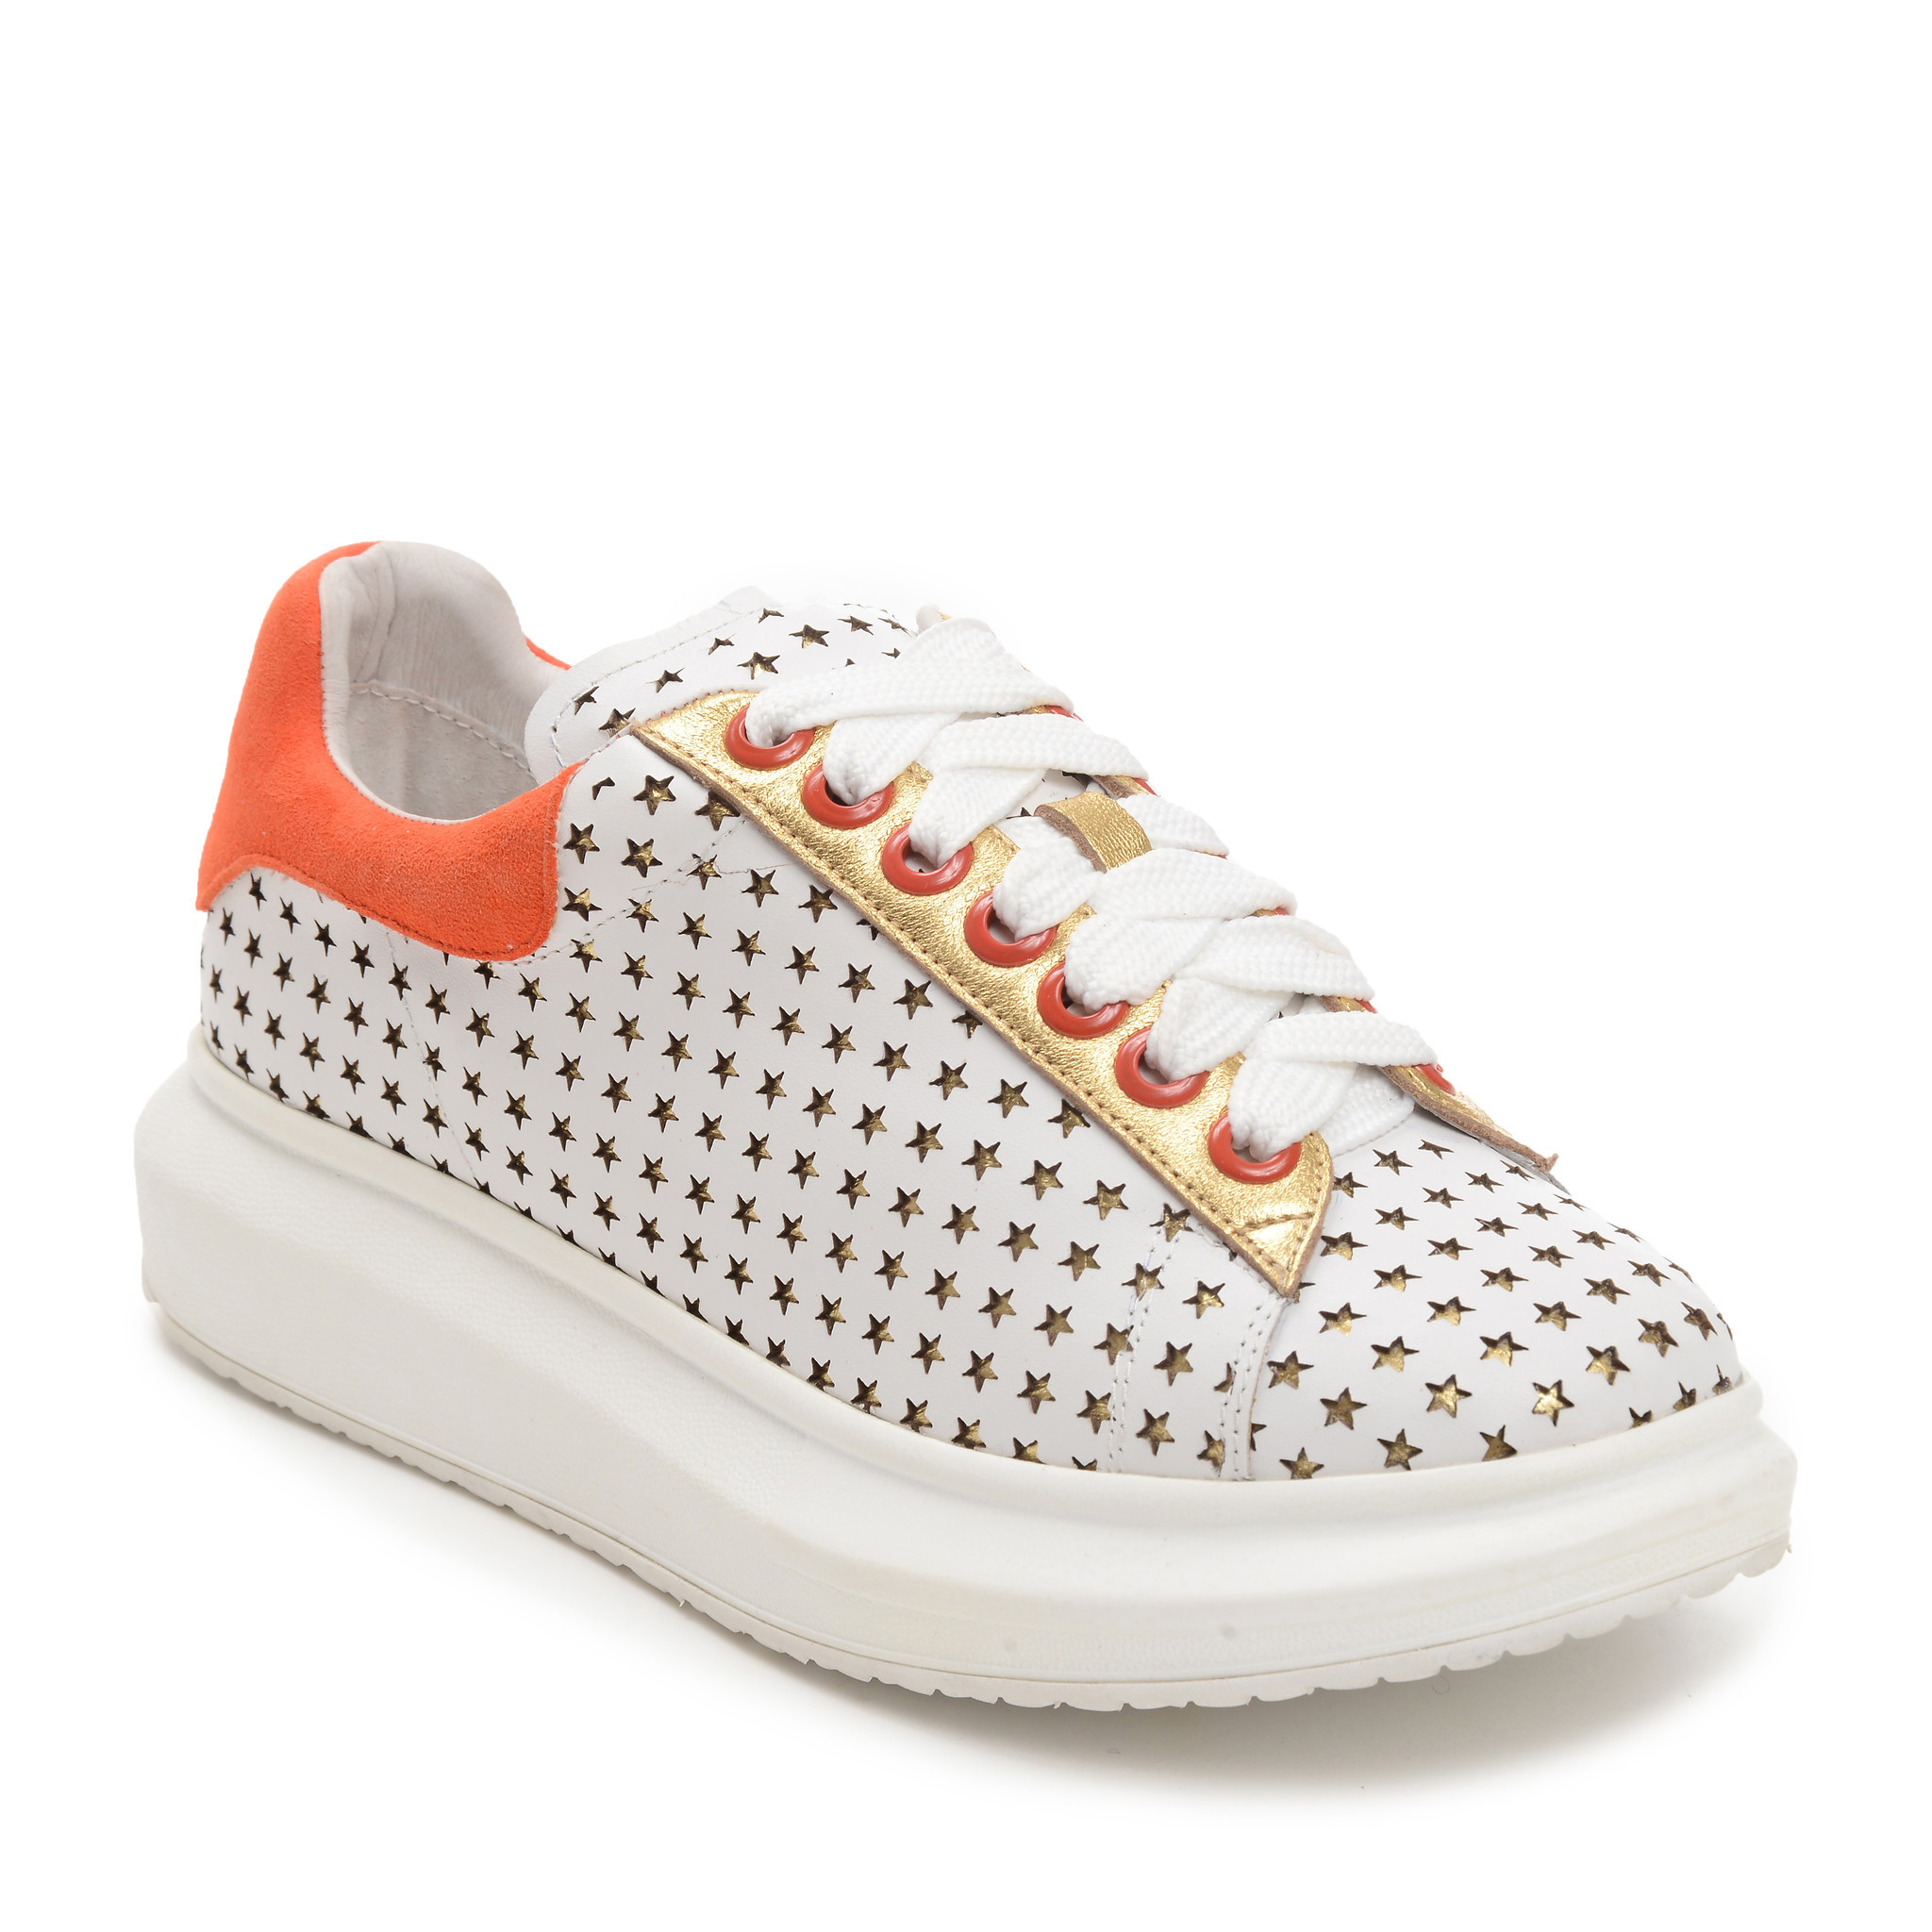 Hollie Watman's perforated white and orange leather sneakers.